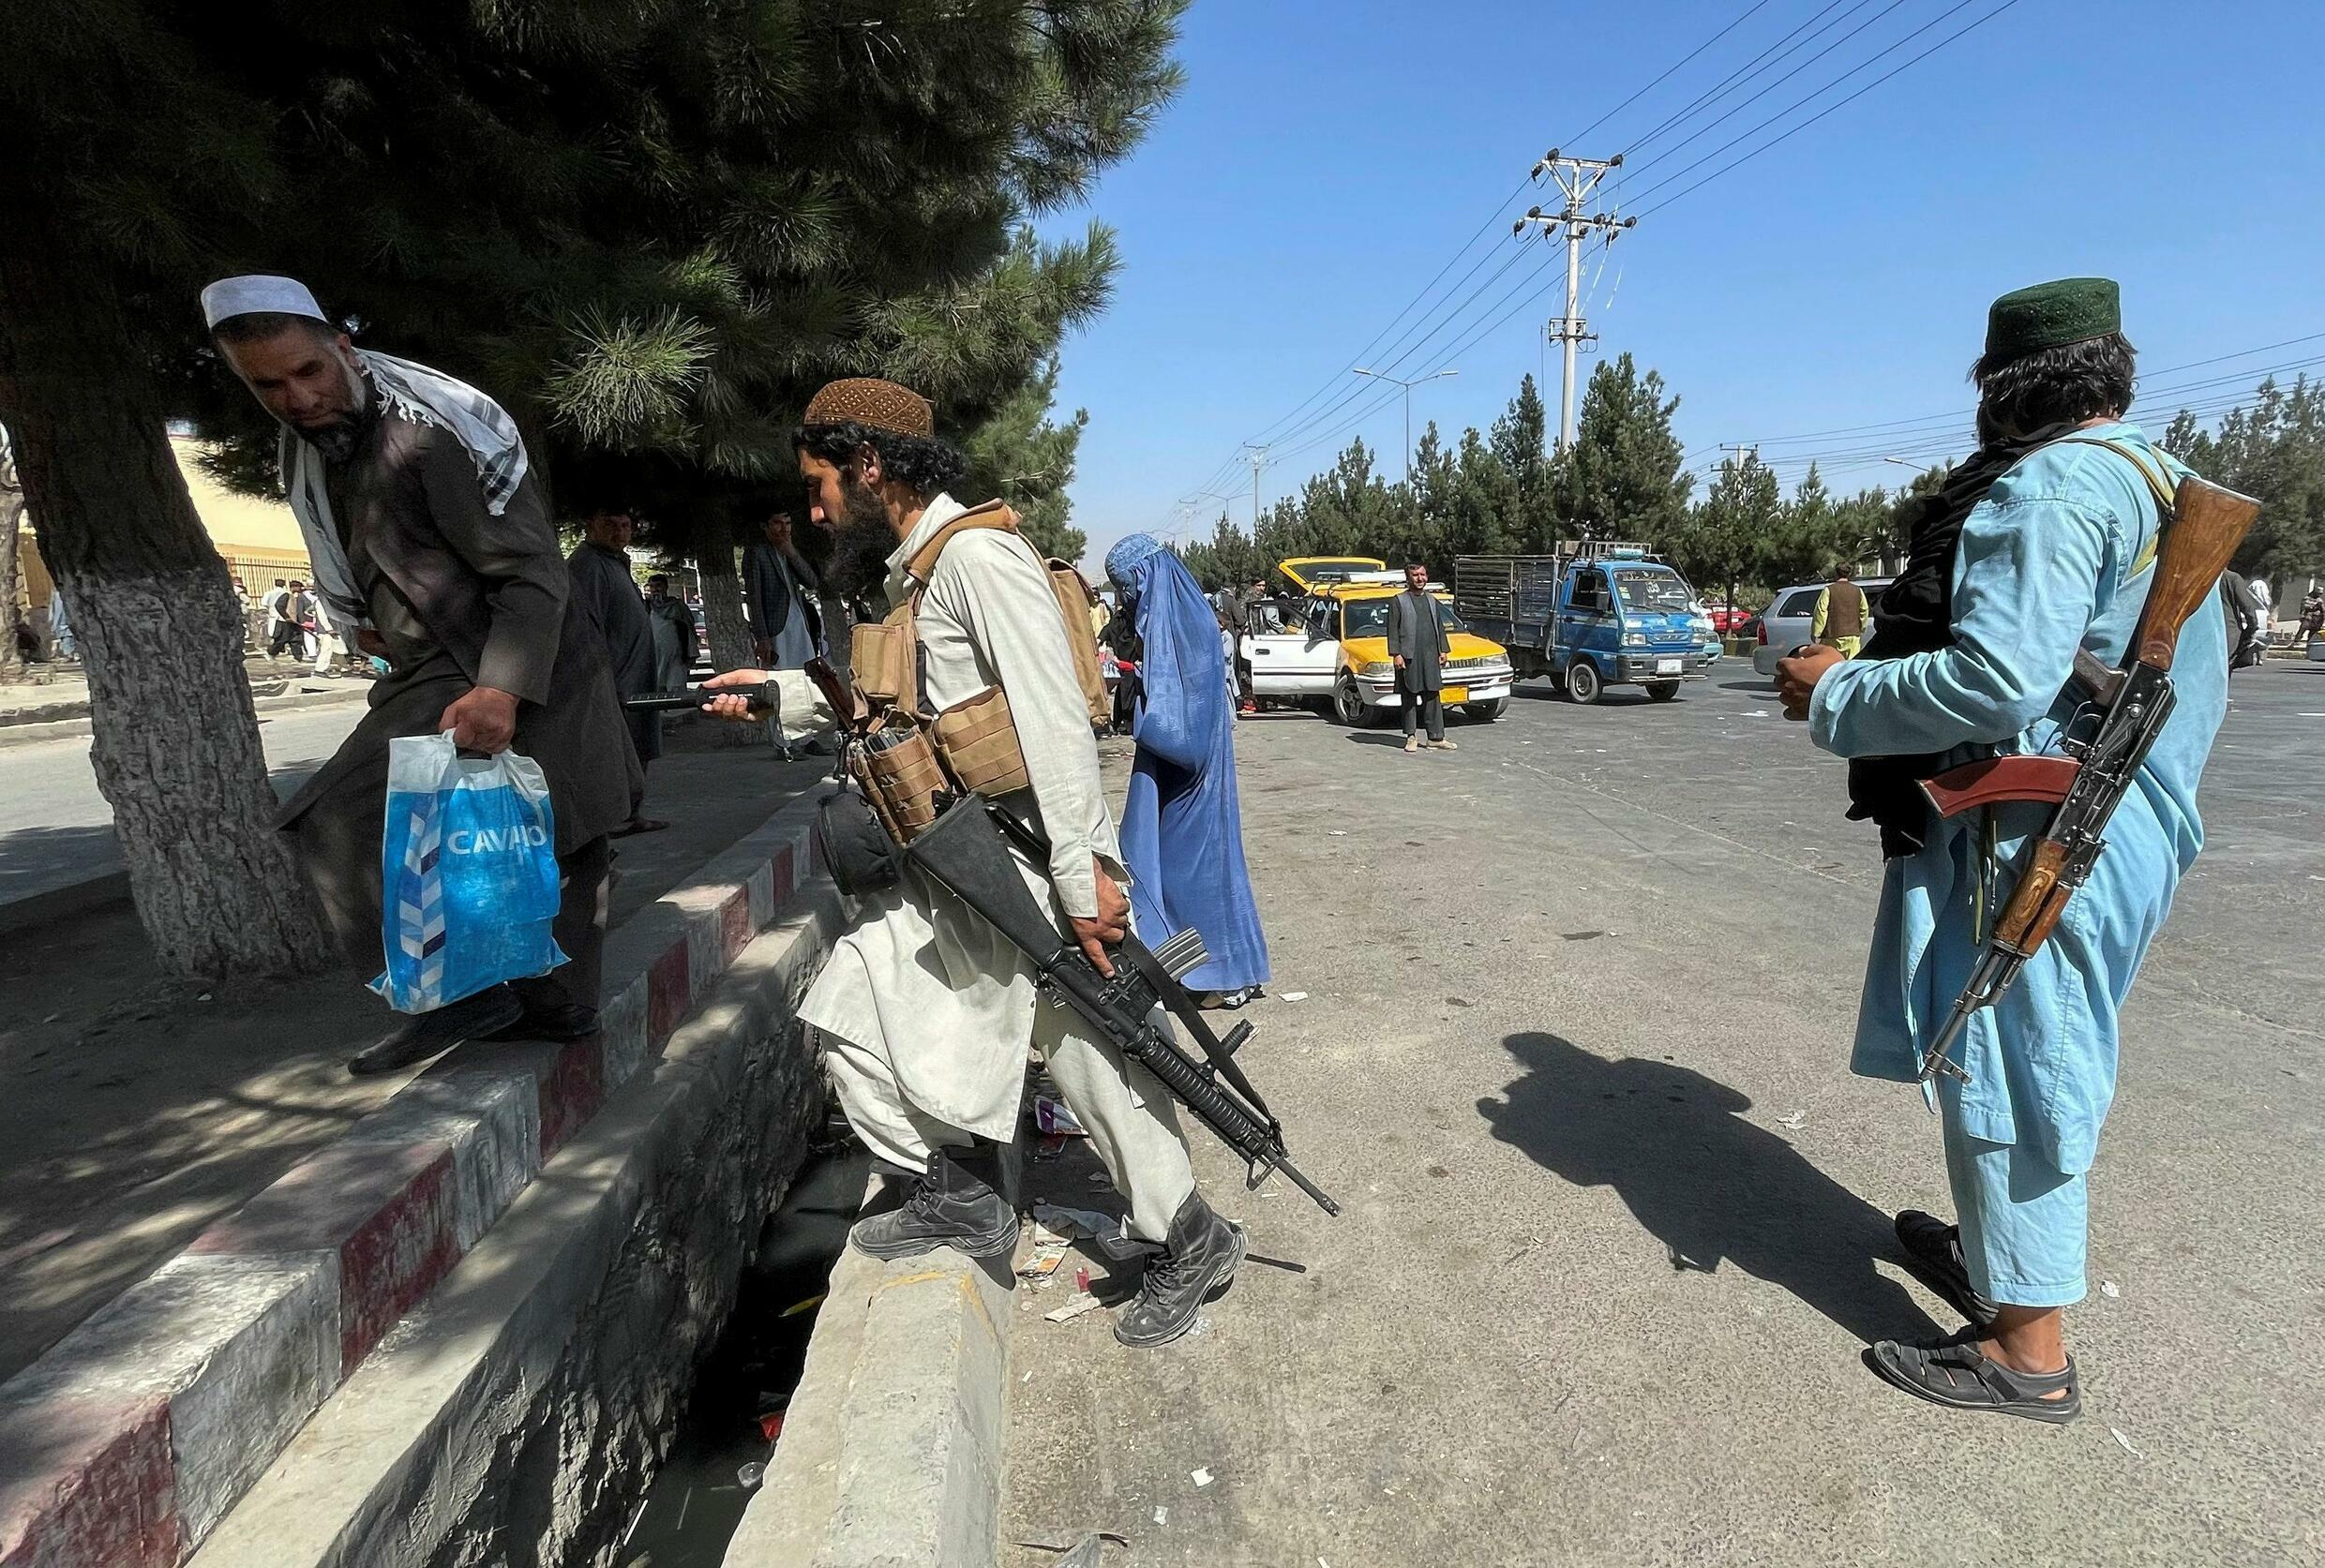 2021-08-27T094655Z_803154703_RC2LDP9S8E0O_RTRMADP_3_AFGHANISTAN-CONFLICT